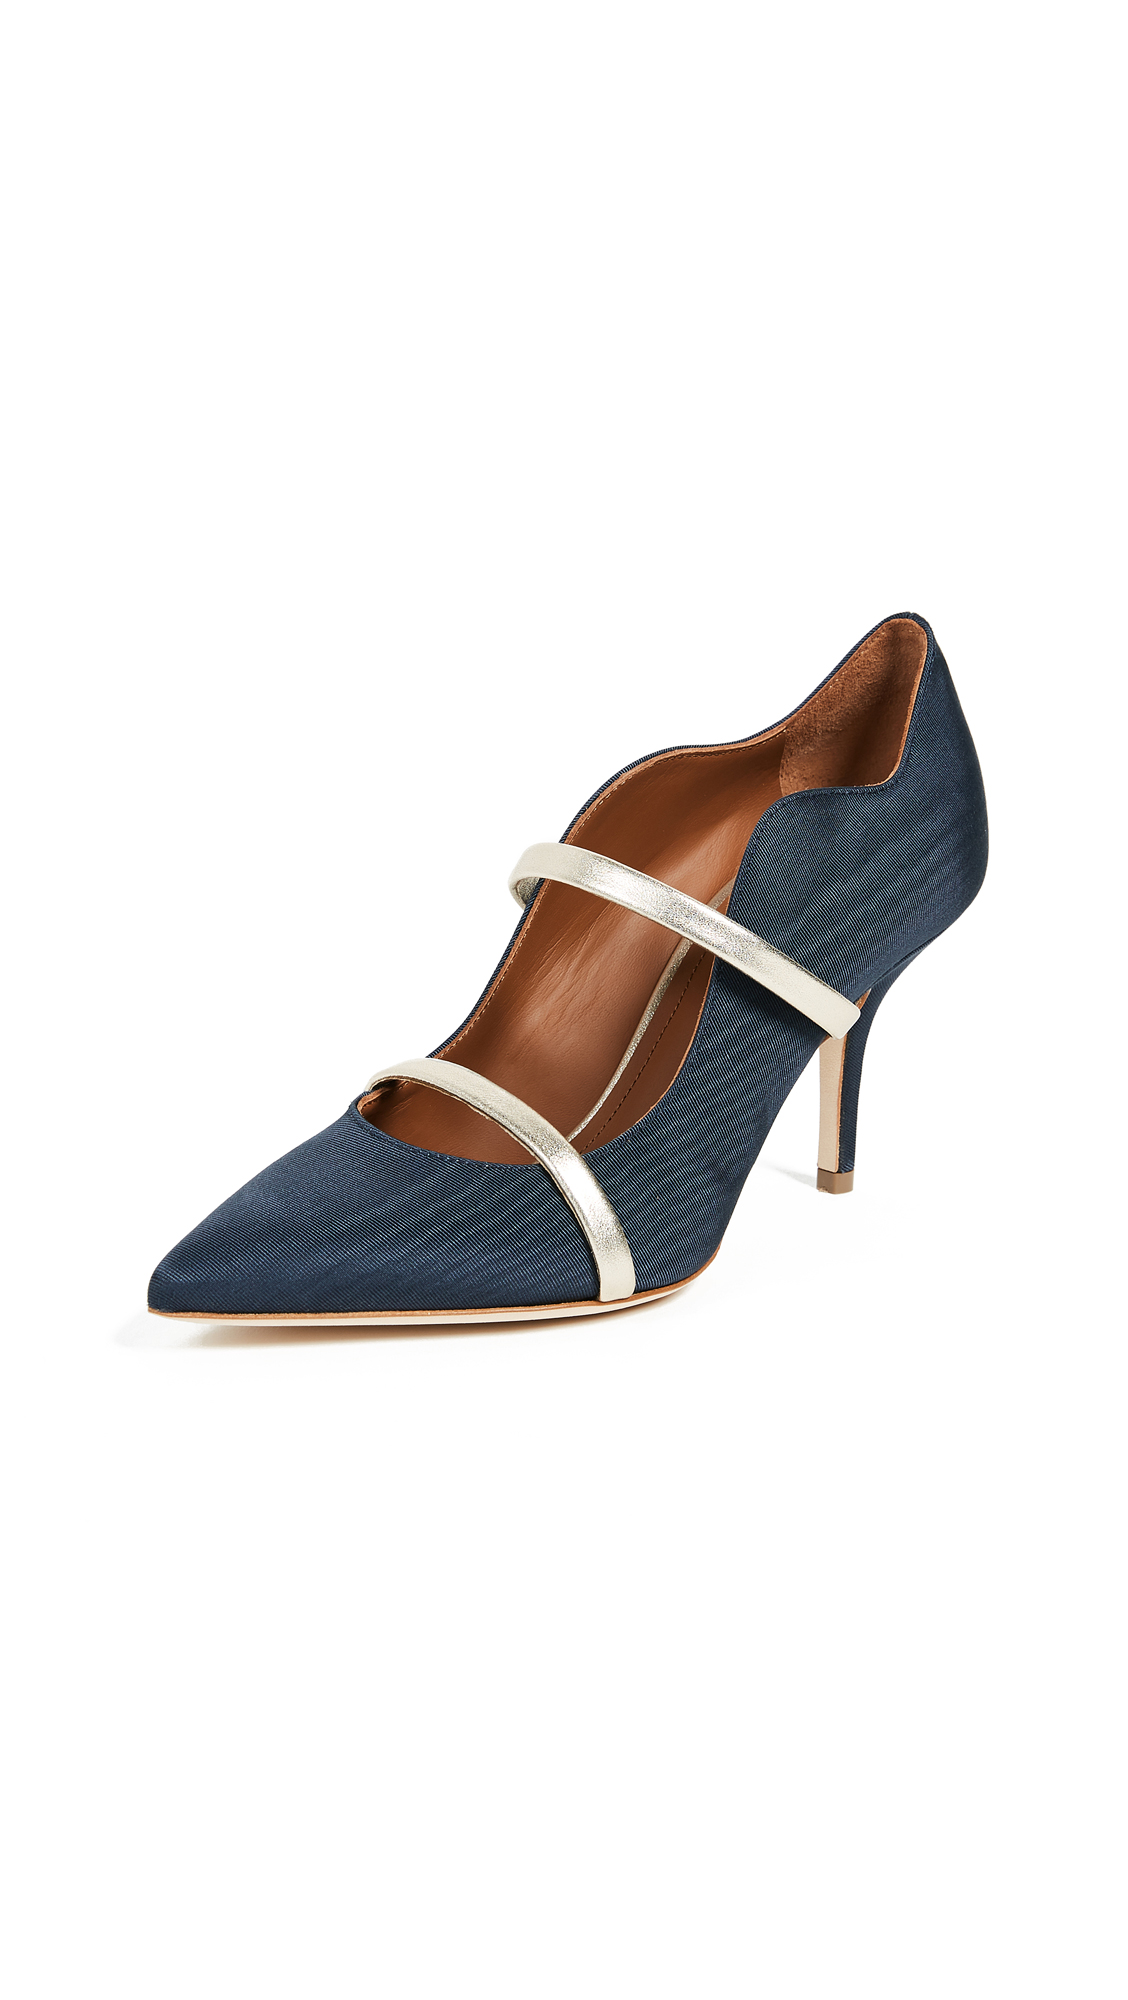 Malone Souliers Maureen 70mm Pump - Navy/Silver